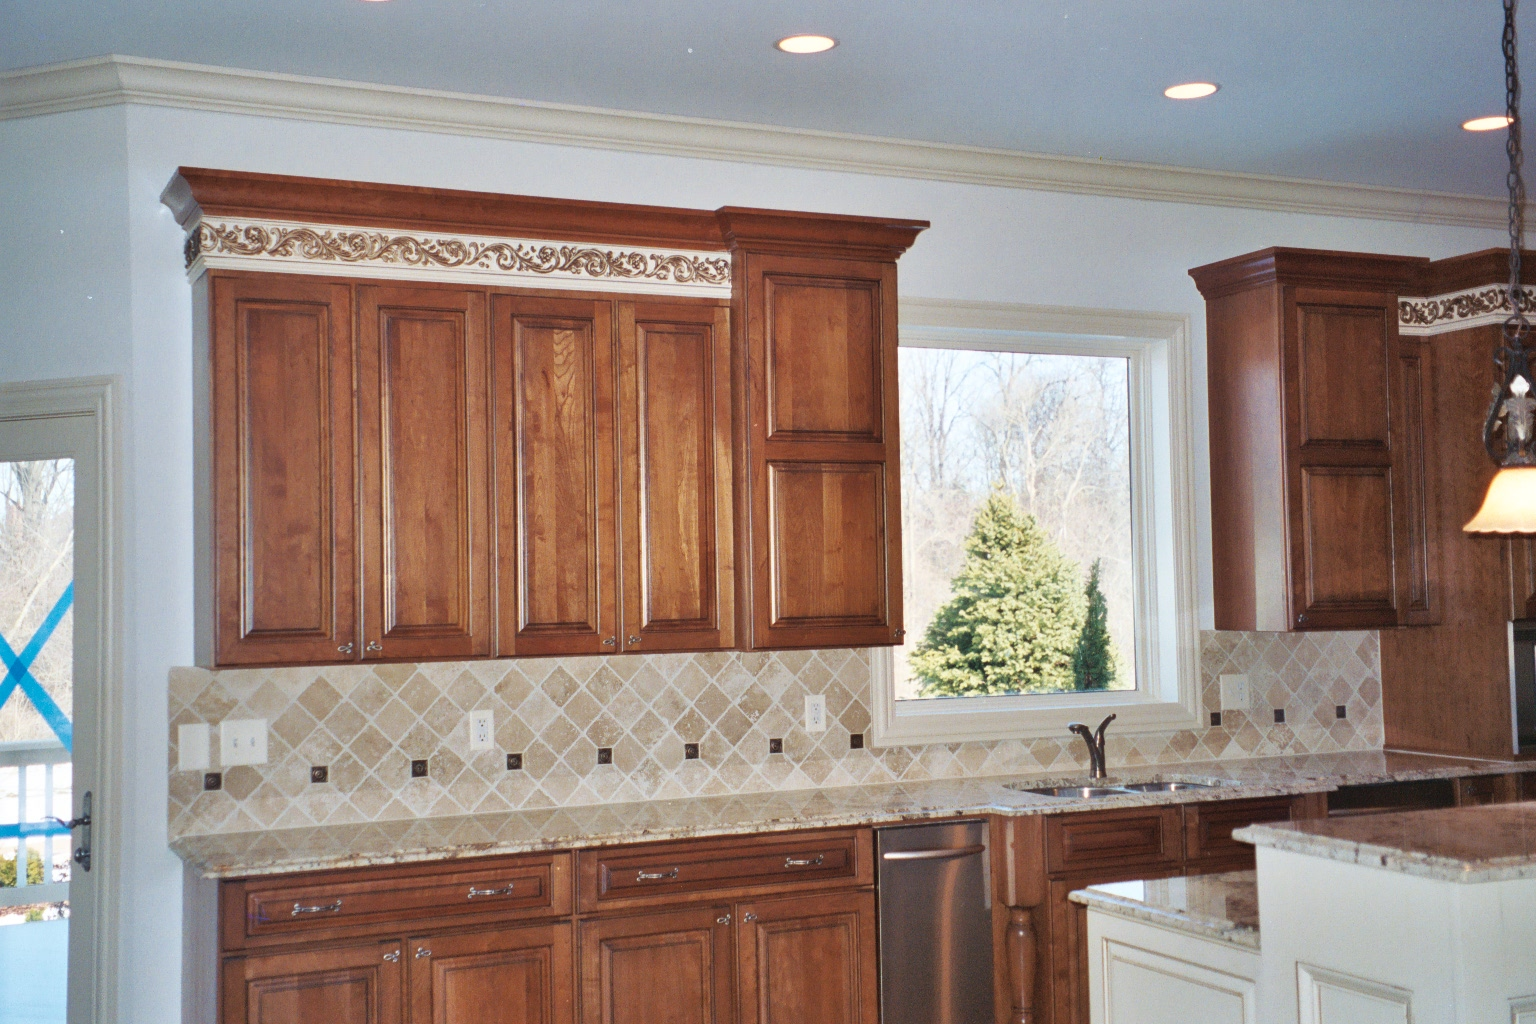 Where To End Kitchen Backsplash Tiles Belk Tile